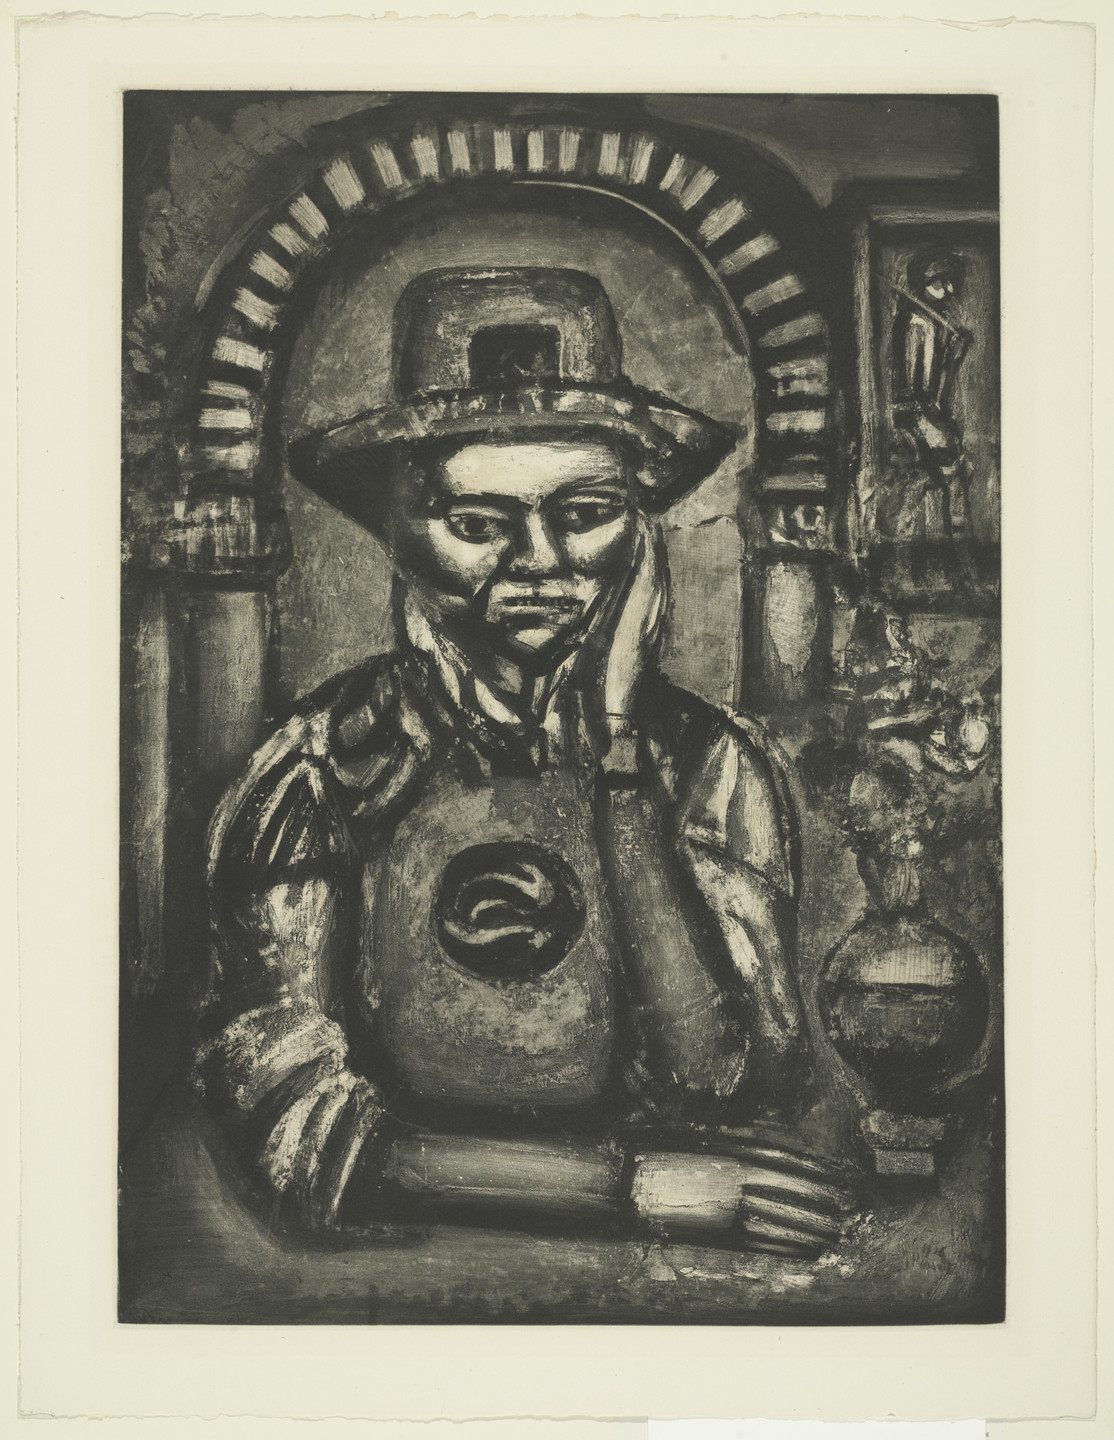 Georges Rouault. The Chinese Invented Gunpowder, They Say, and Made Us a Gift of It (Chinois inventa, dit-on, la poudre à canon, nous en fit don), plate XXXVIII from Miserere. 1926, published 1948